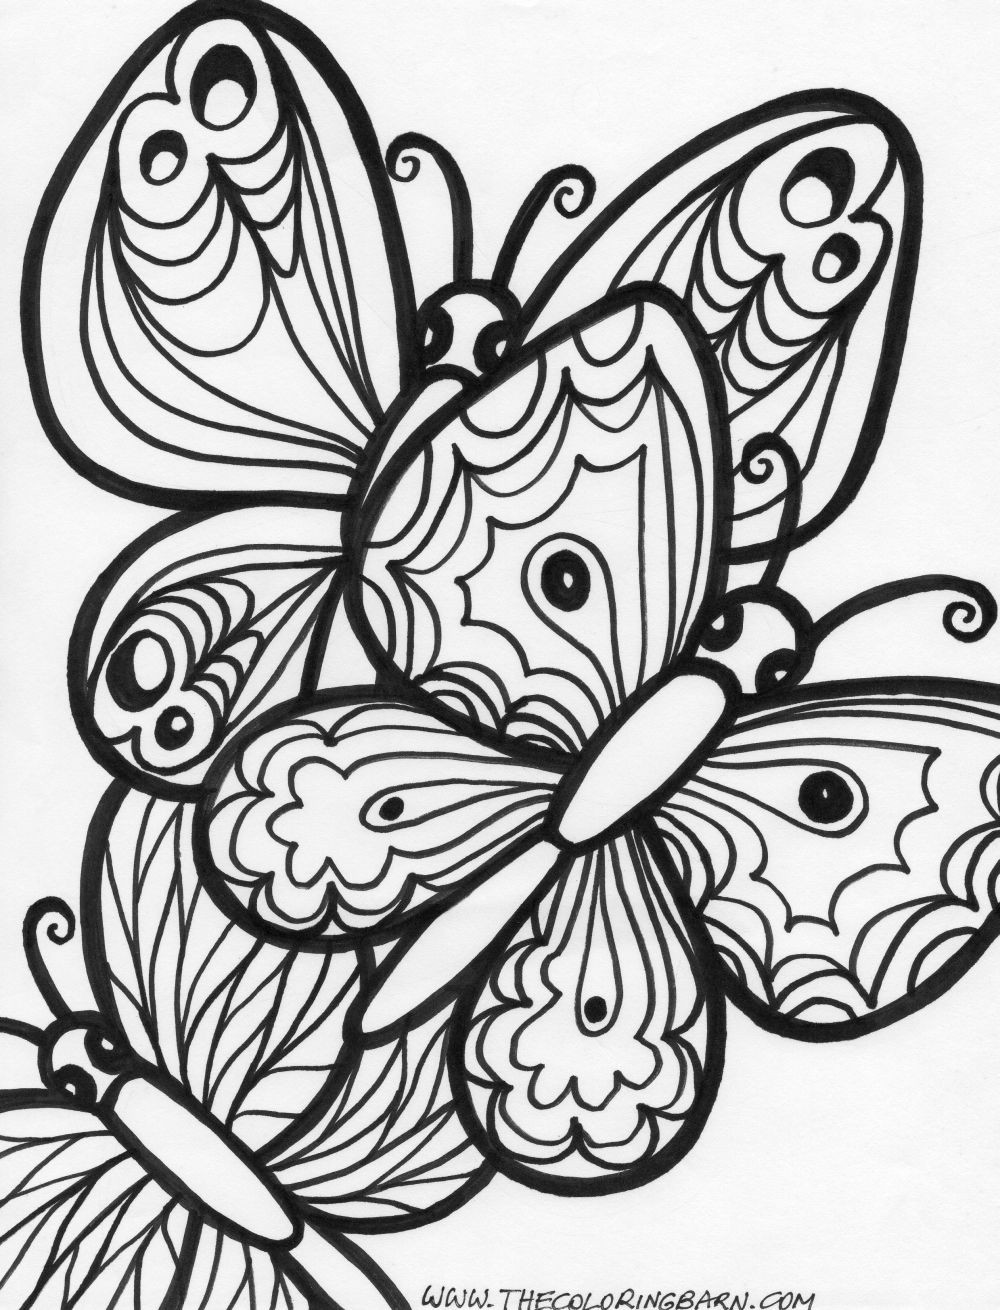 Best ideas about Free Printable Coloring Pages For Adults Only . Save or Pin coloring pages for adults Now.